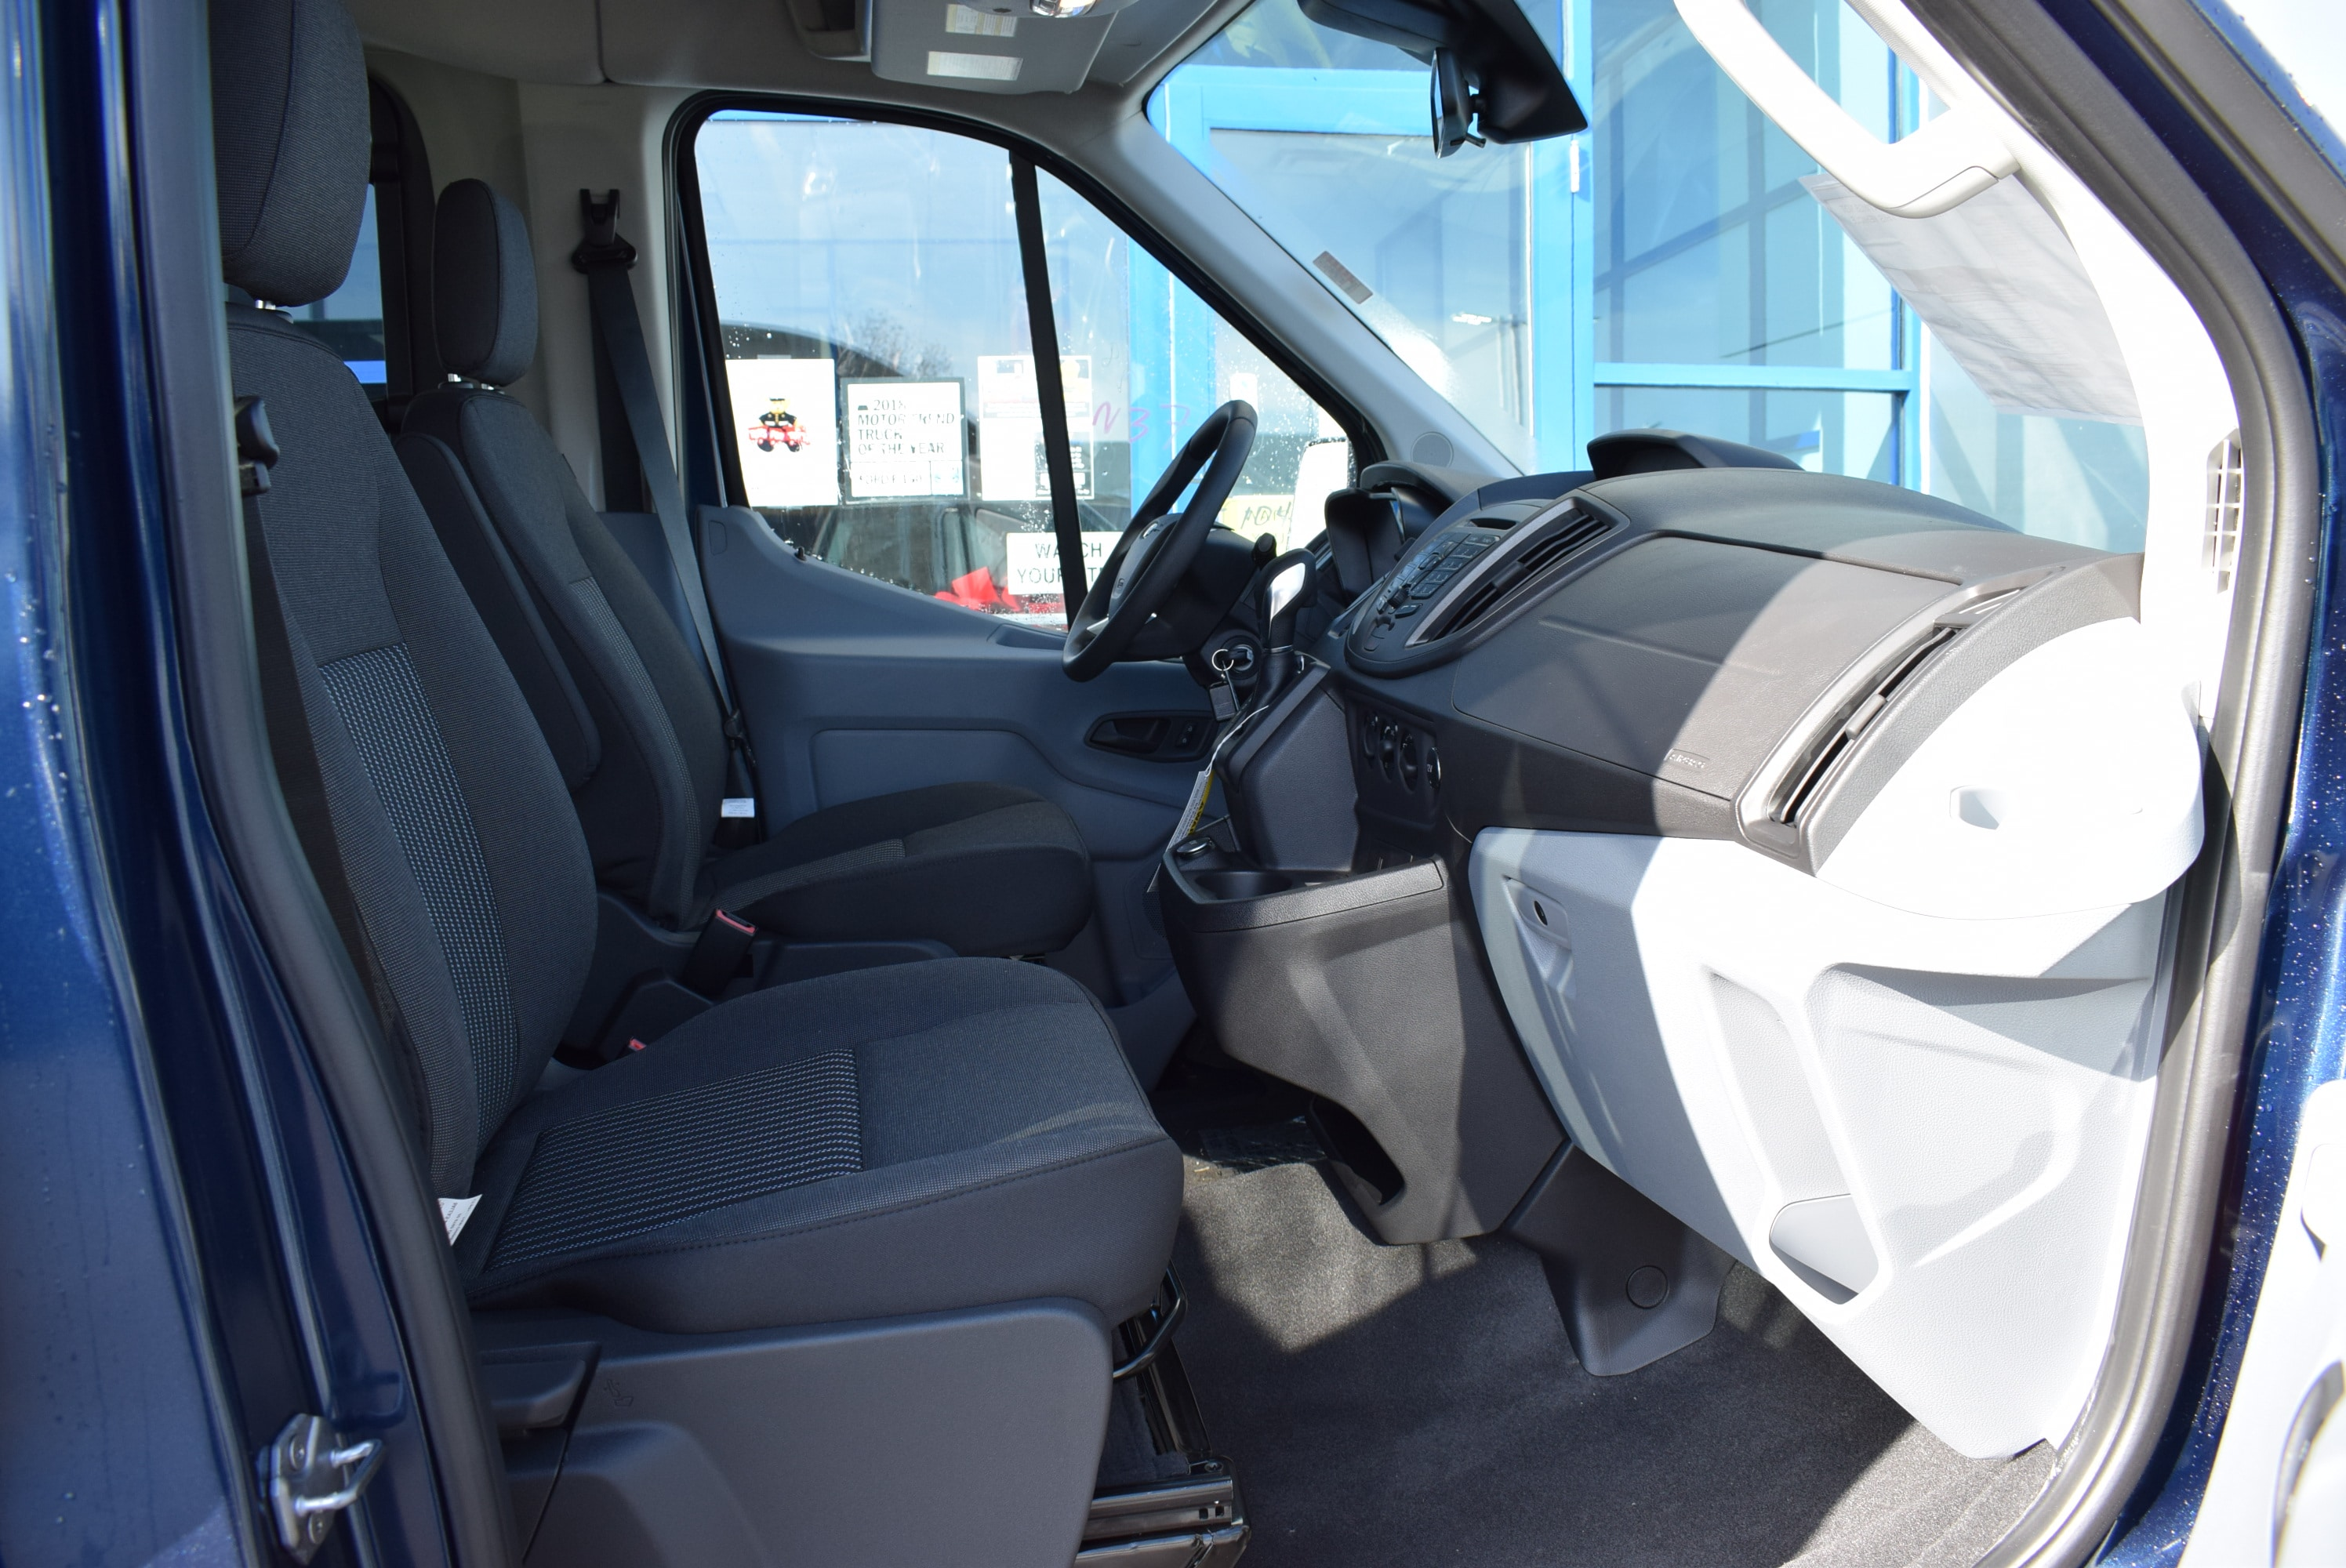 2019 Transit 350 Med Roof 4x2,  Passenger Wagon #T19037 - photo 18